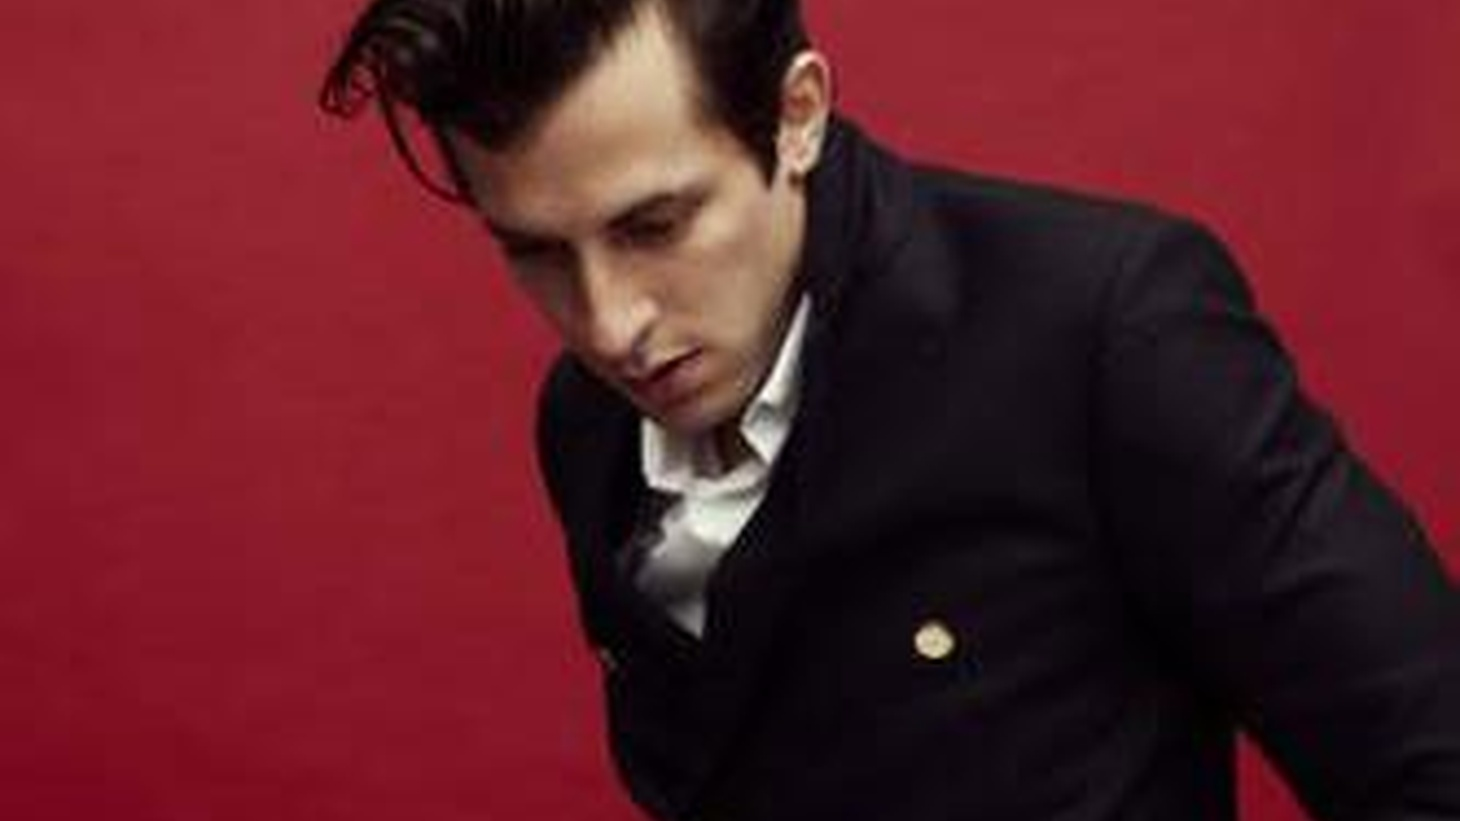 Producer/artist Mark Ronson on his participation in the Re:Generation, a film examining different genres through the eyes of 5 influential electronic producer/DJ. (10am)